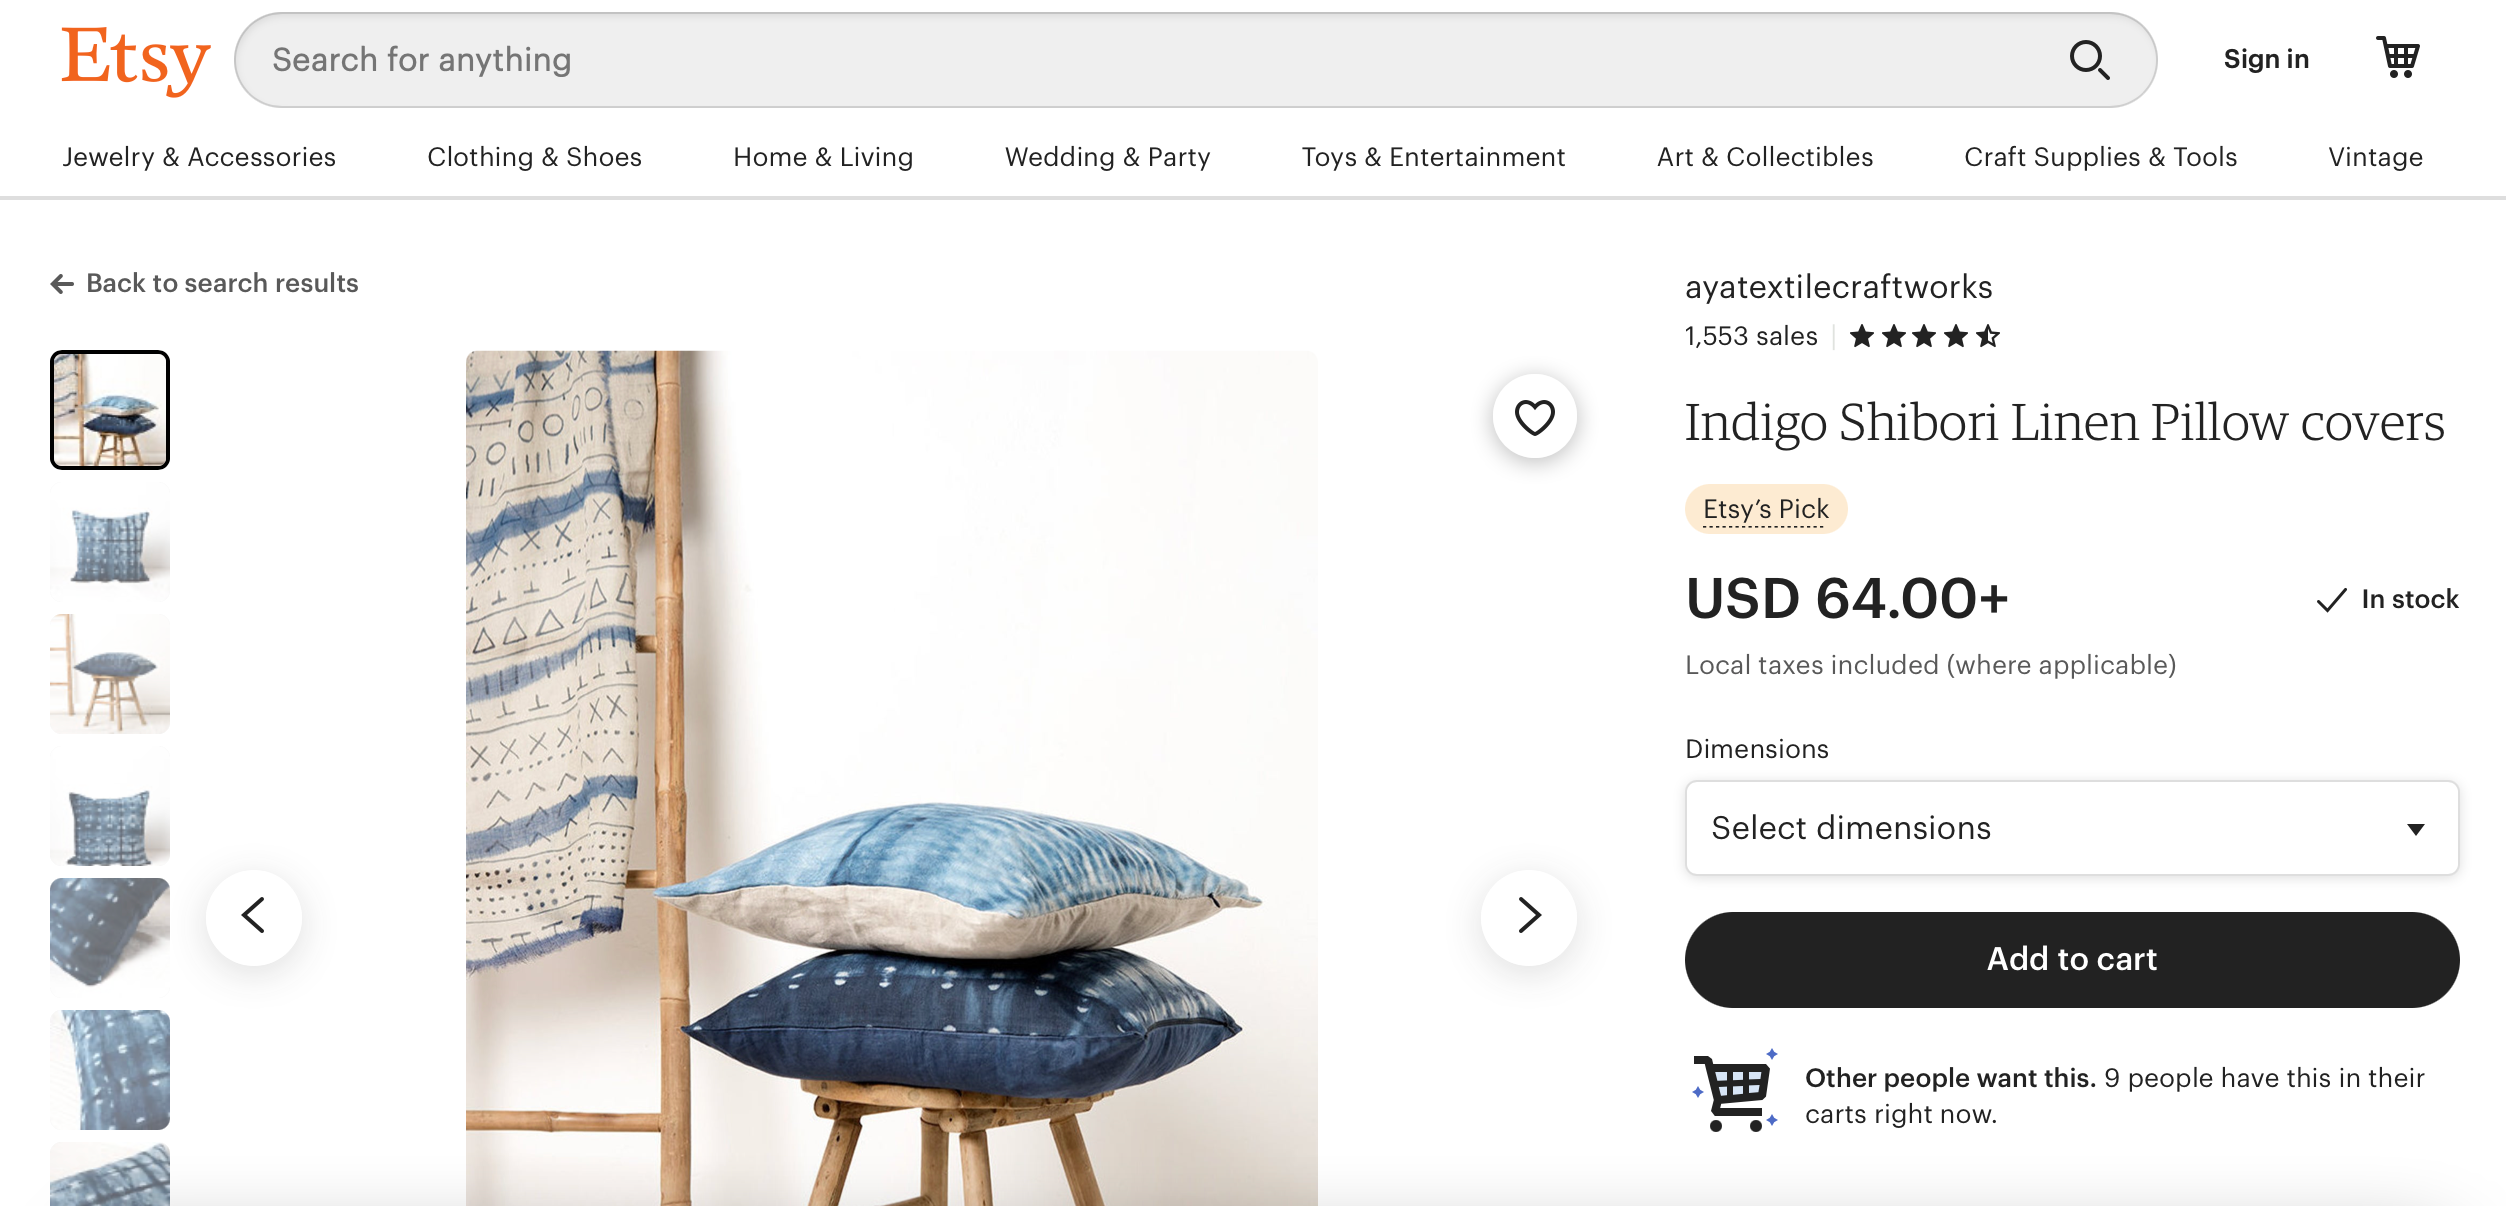 Multichannel Selling: A Guide for Ecommerce Businesses